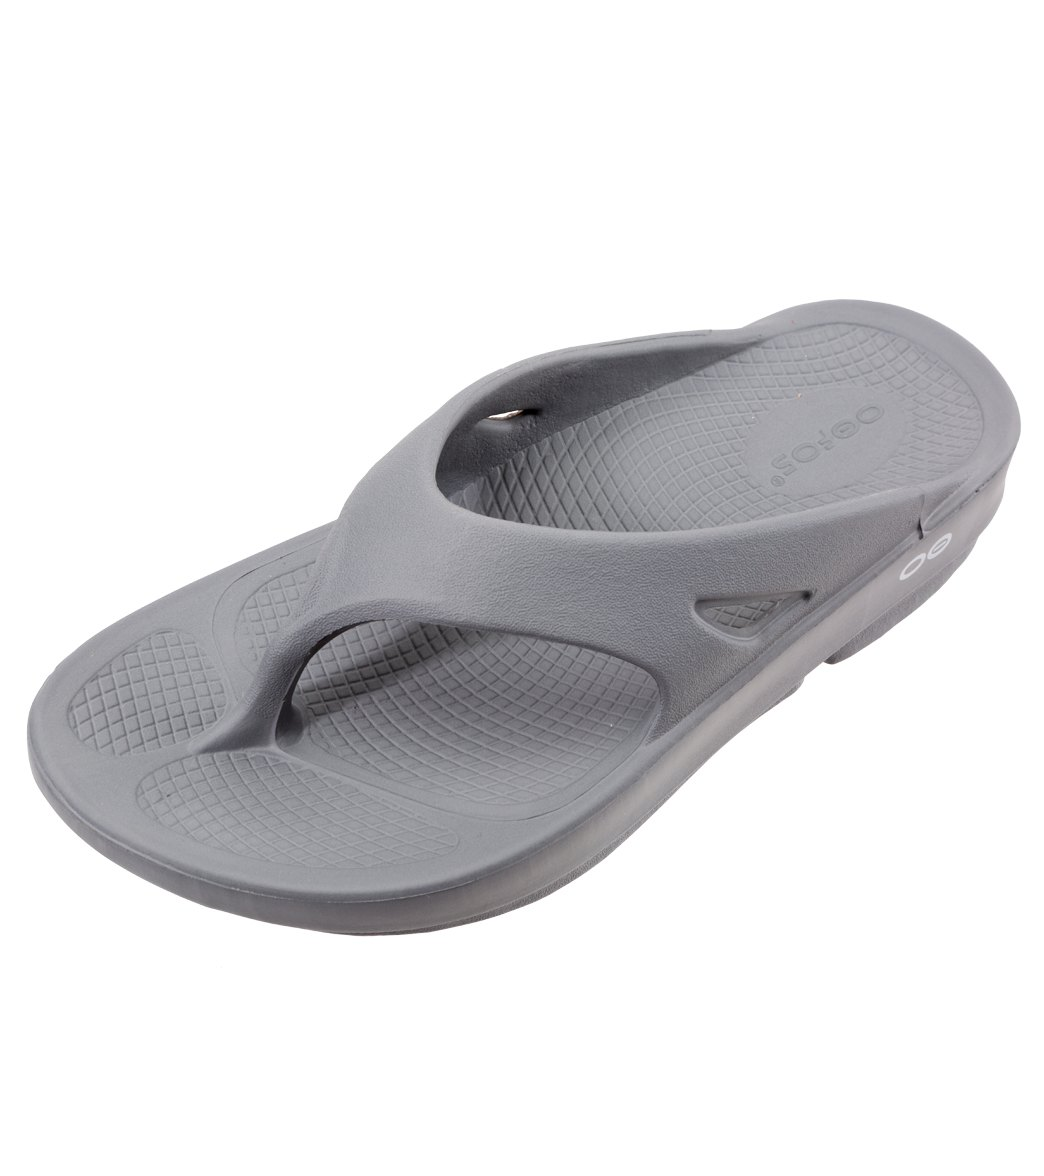 48f137e1d93d Oofos OOriginal Recovery Flip Flop at SwimOutlet.com - Free Shipping